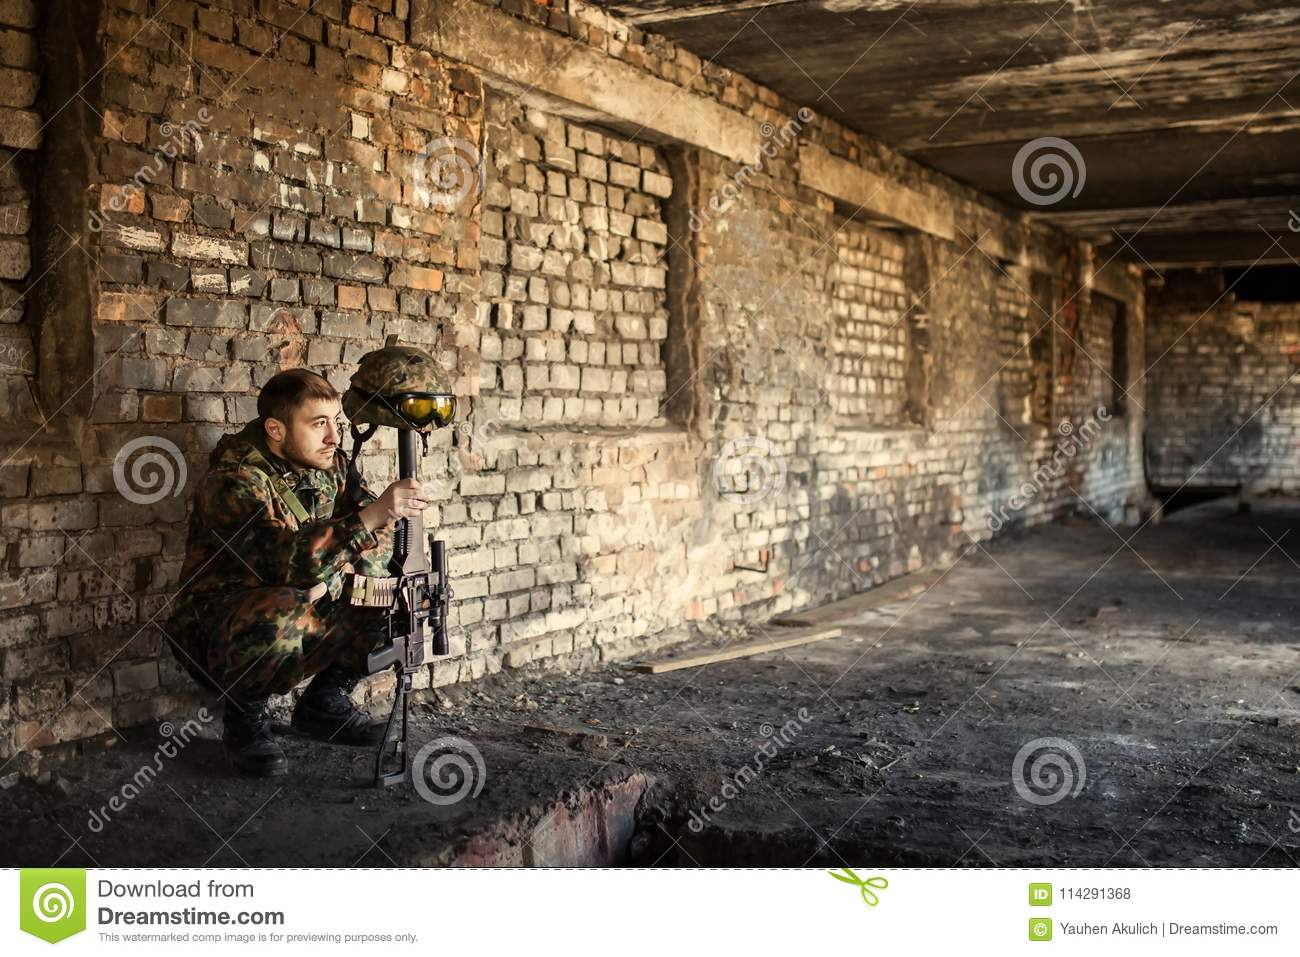 A thoughtful soldier, resting from a military operation